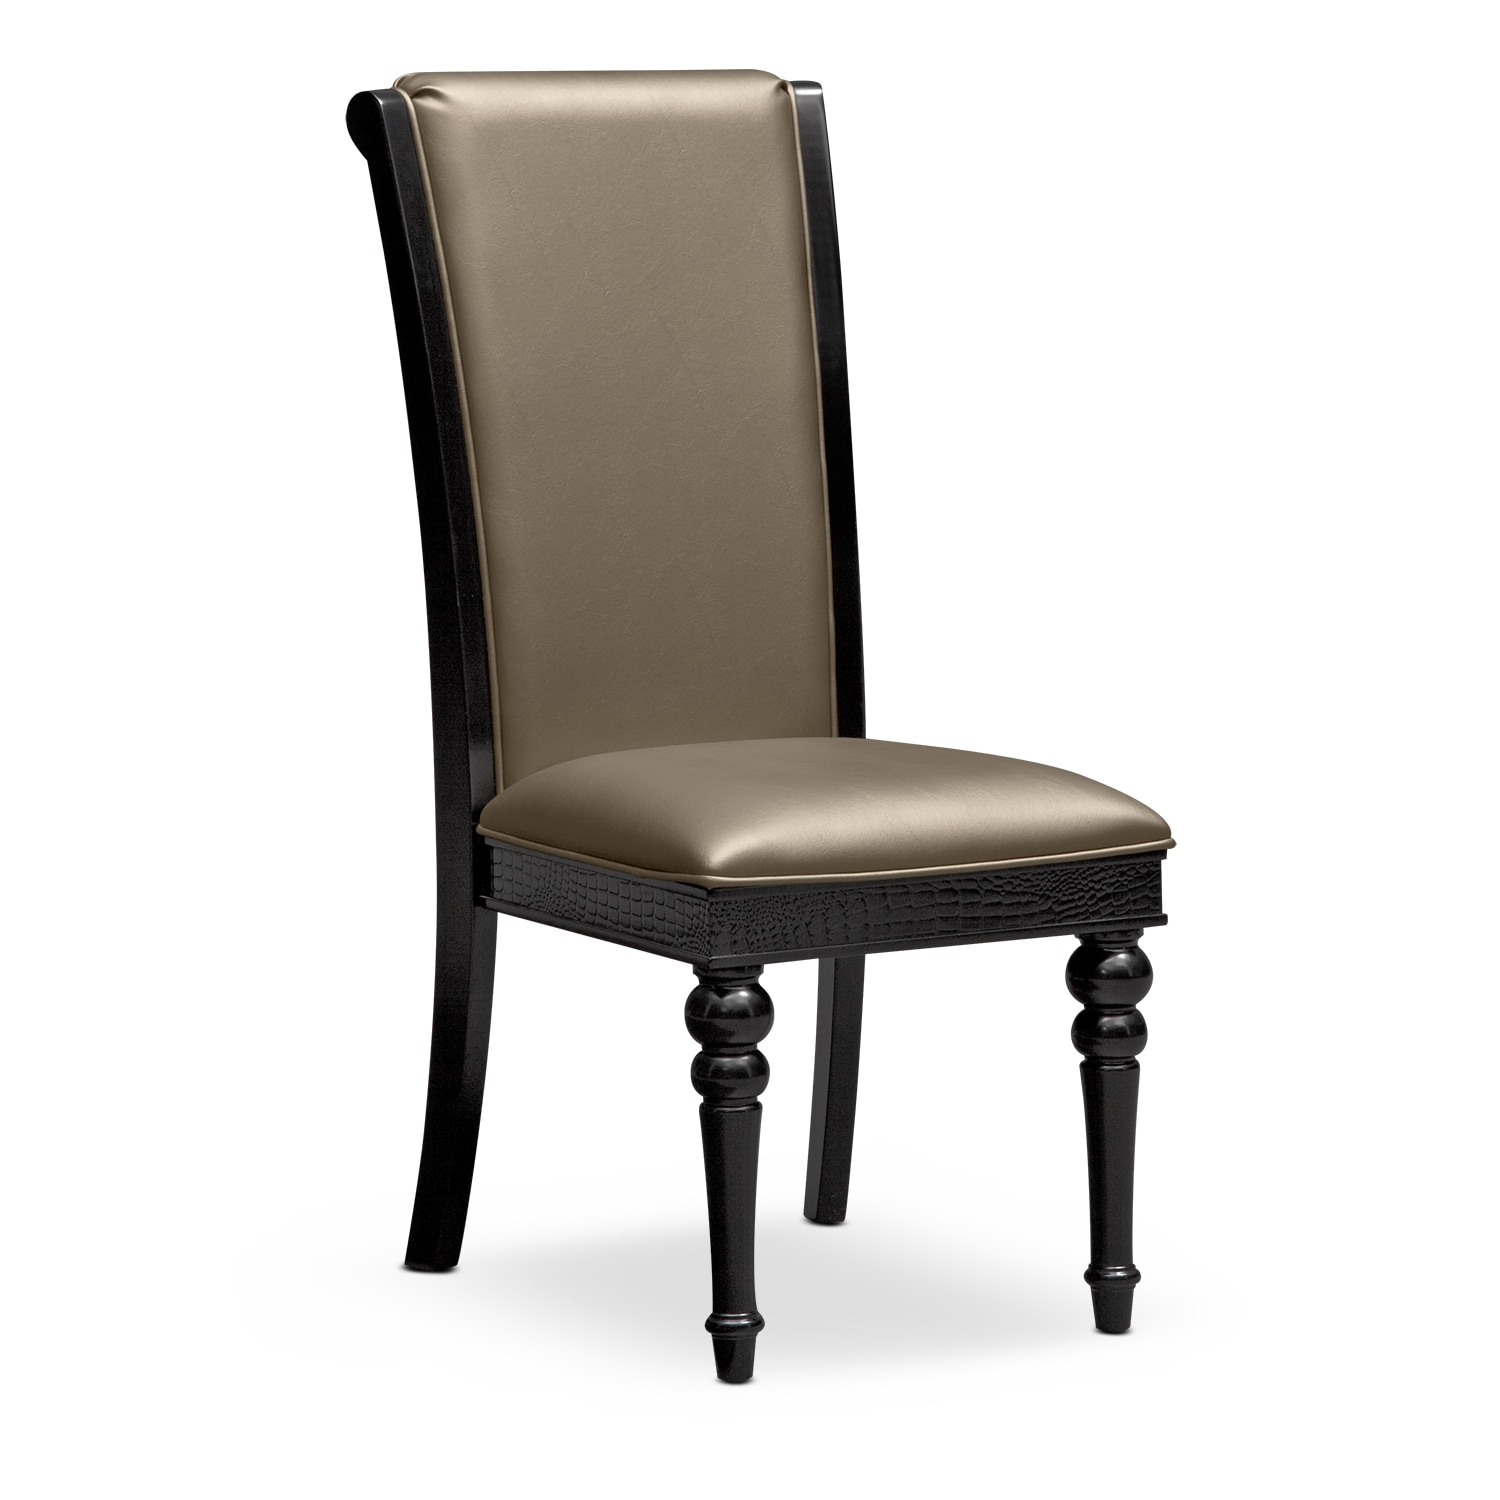 Dining Room Furniture - Paradiso Chair